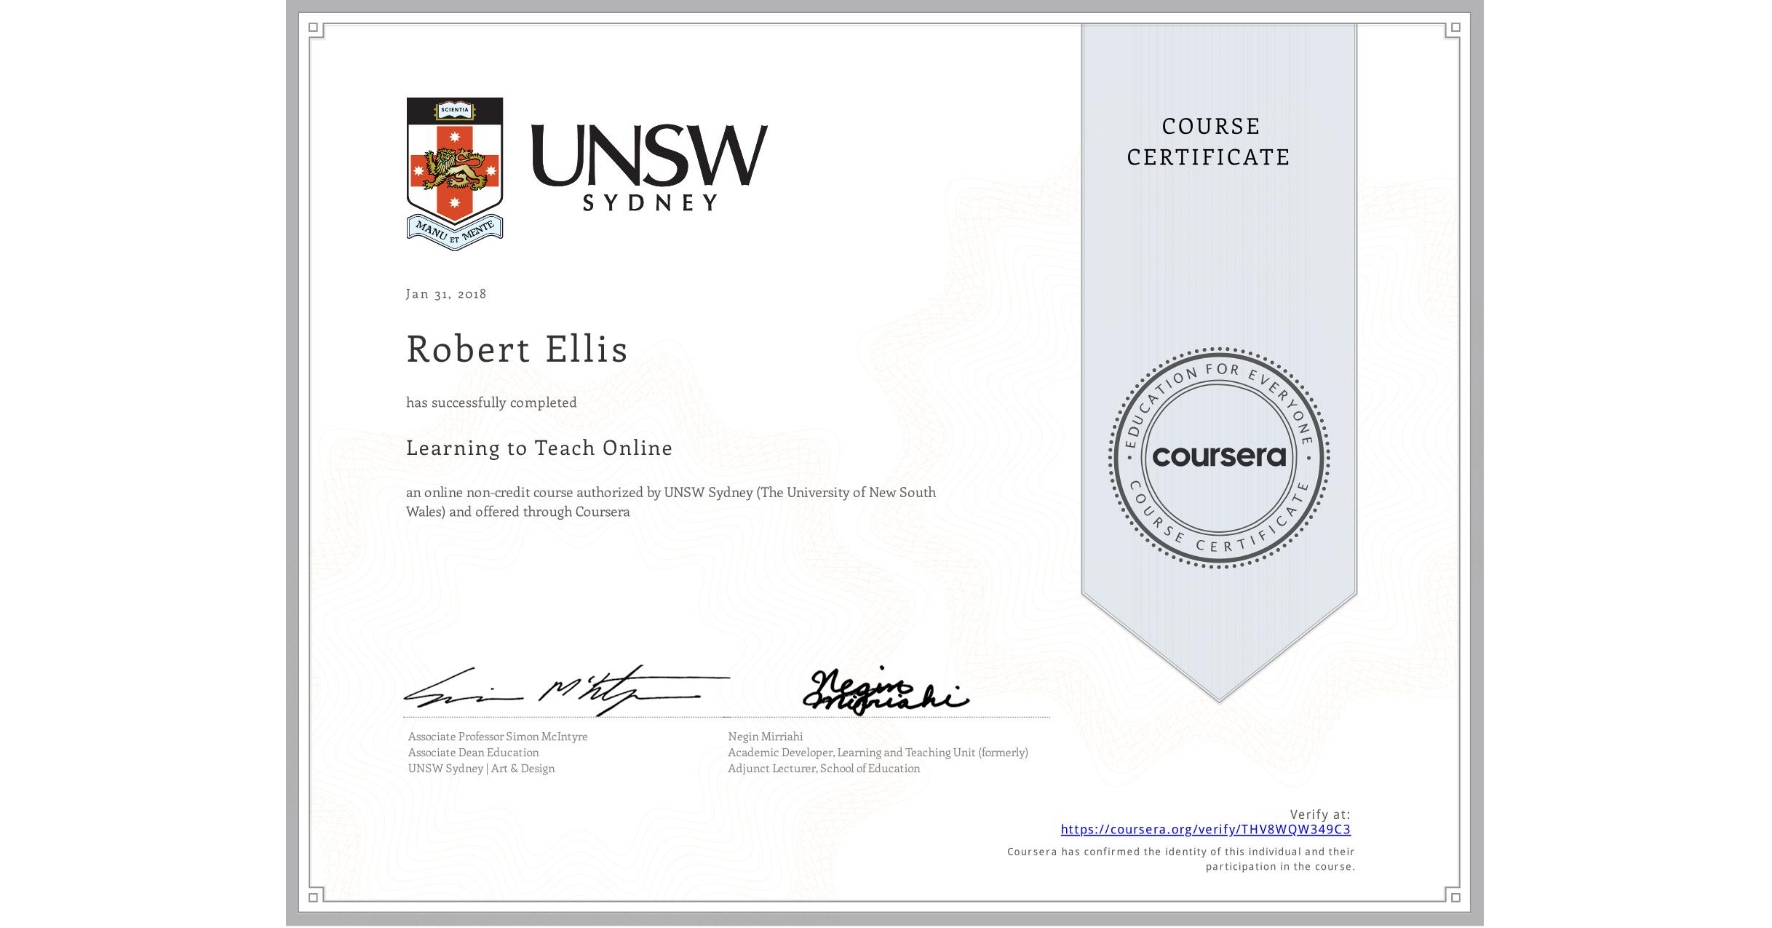 View certificate for Robert Ellis, Learning to Teach Online, an online non-credit course authorized by UNSW Sydney (The University of New South Wales) and offered through Coursera